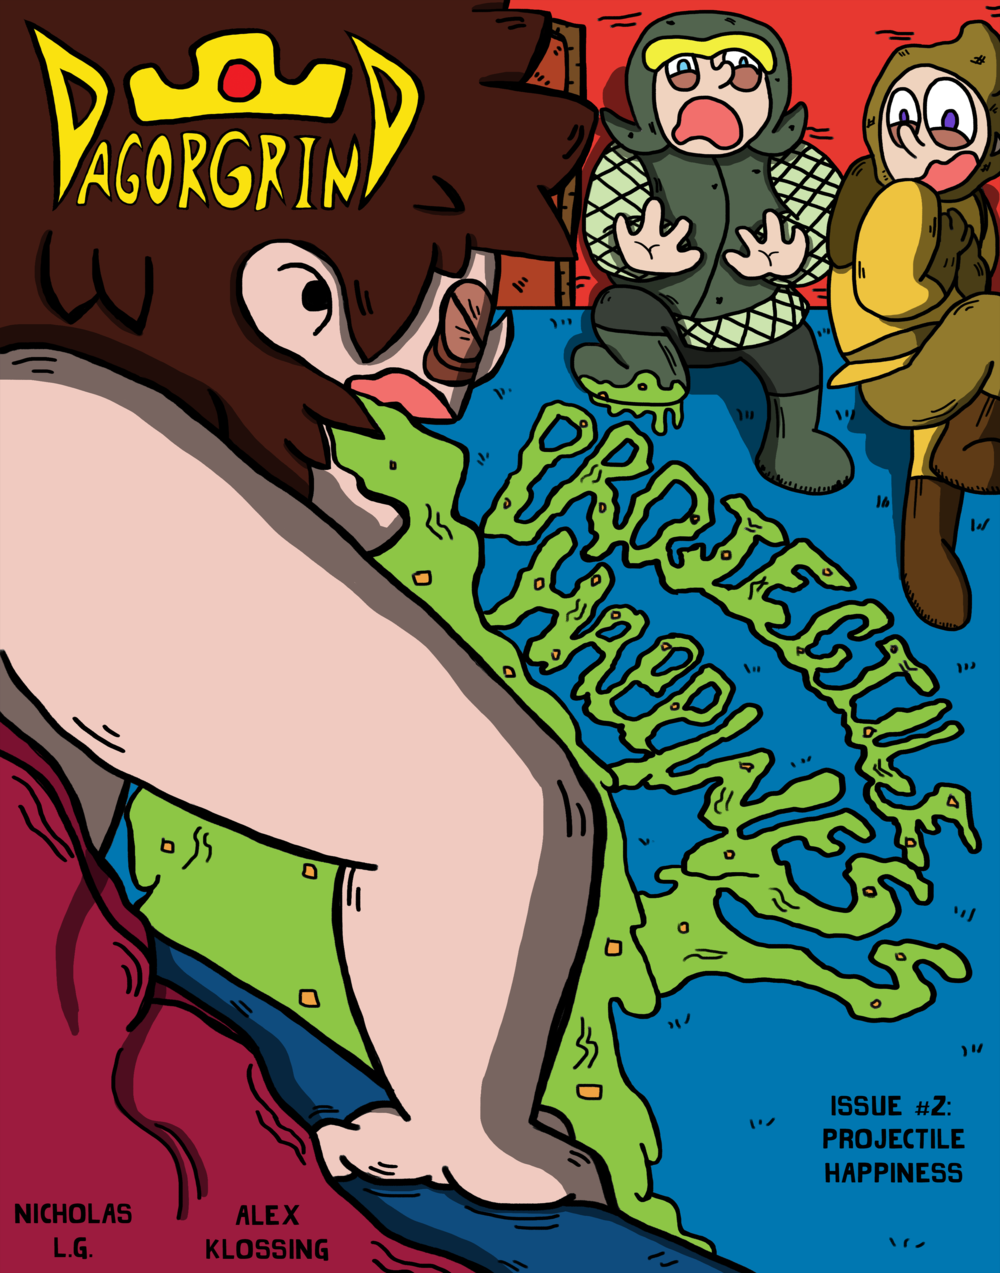 17dagorgrind_seconcover_gallery.png